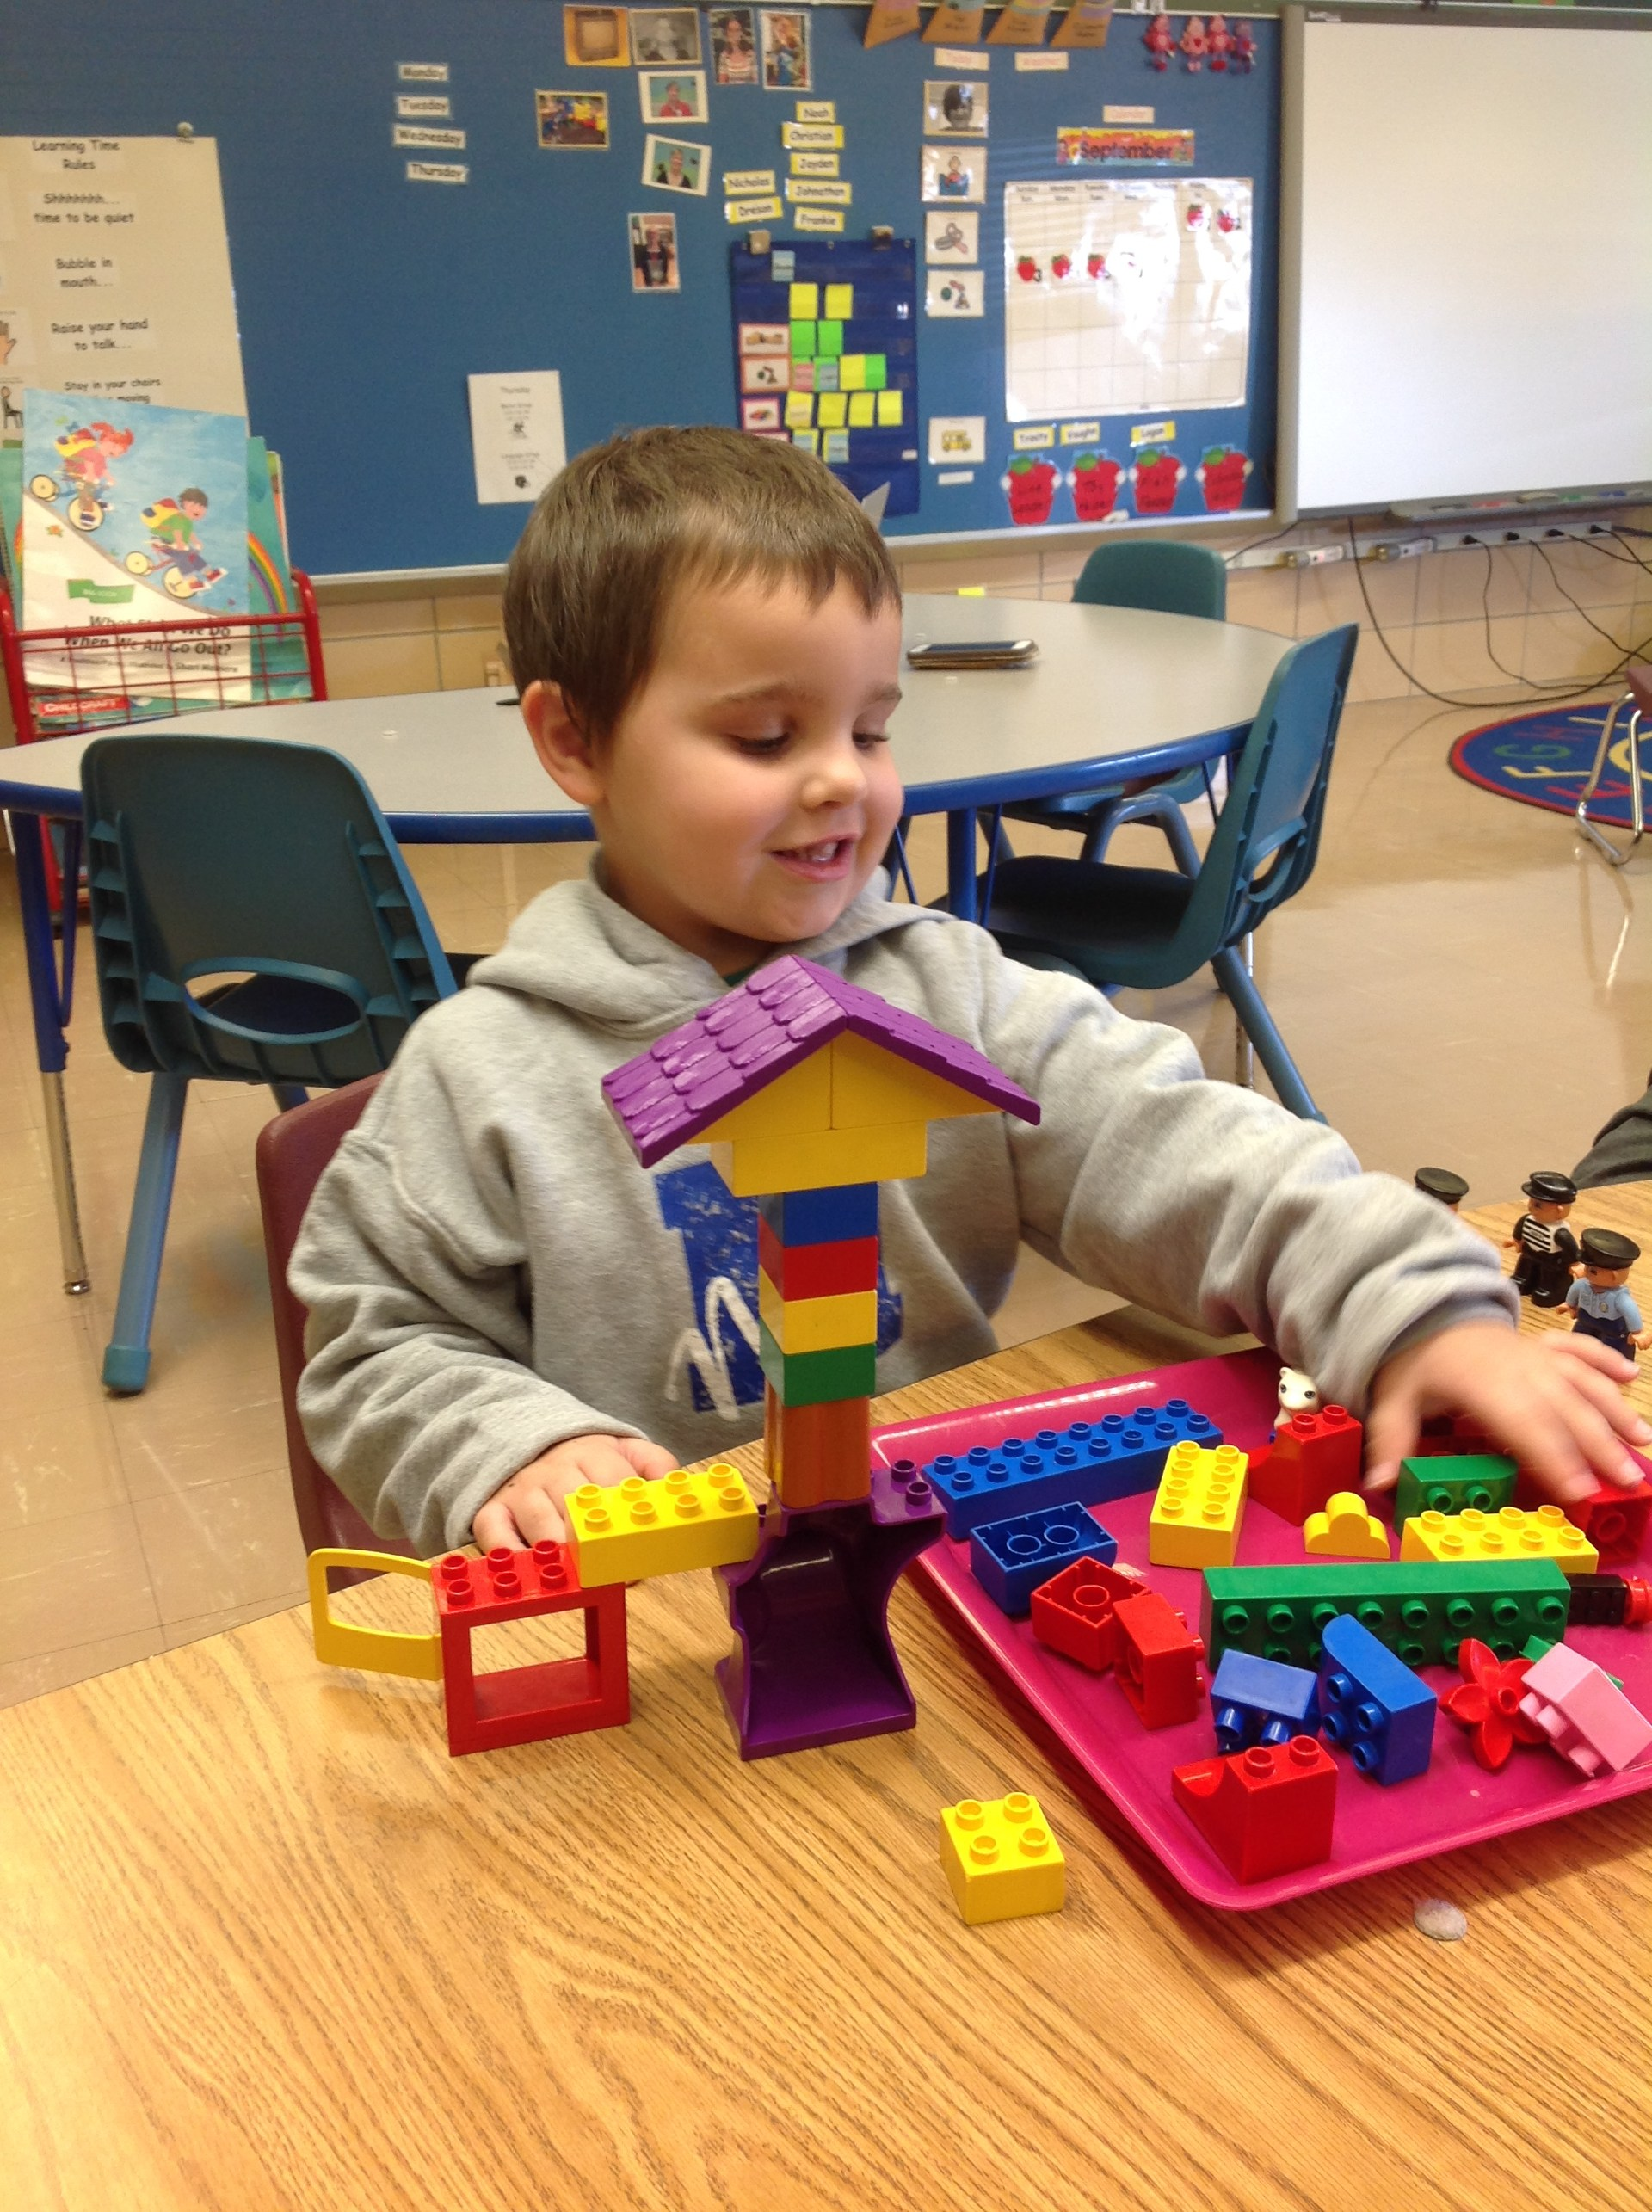 Student playing with building blocks.